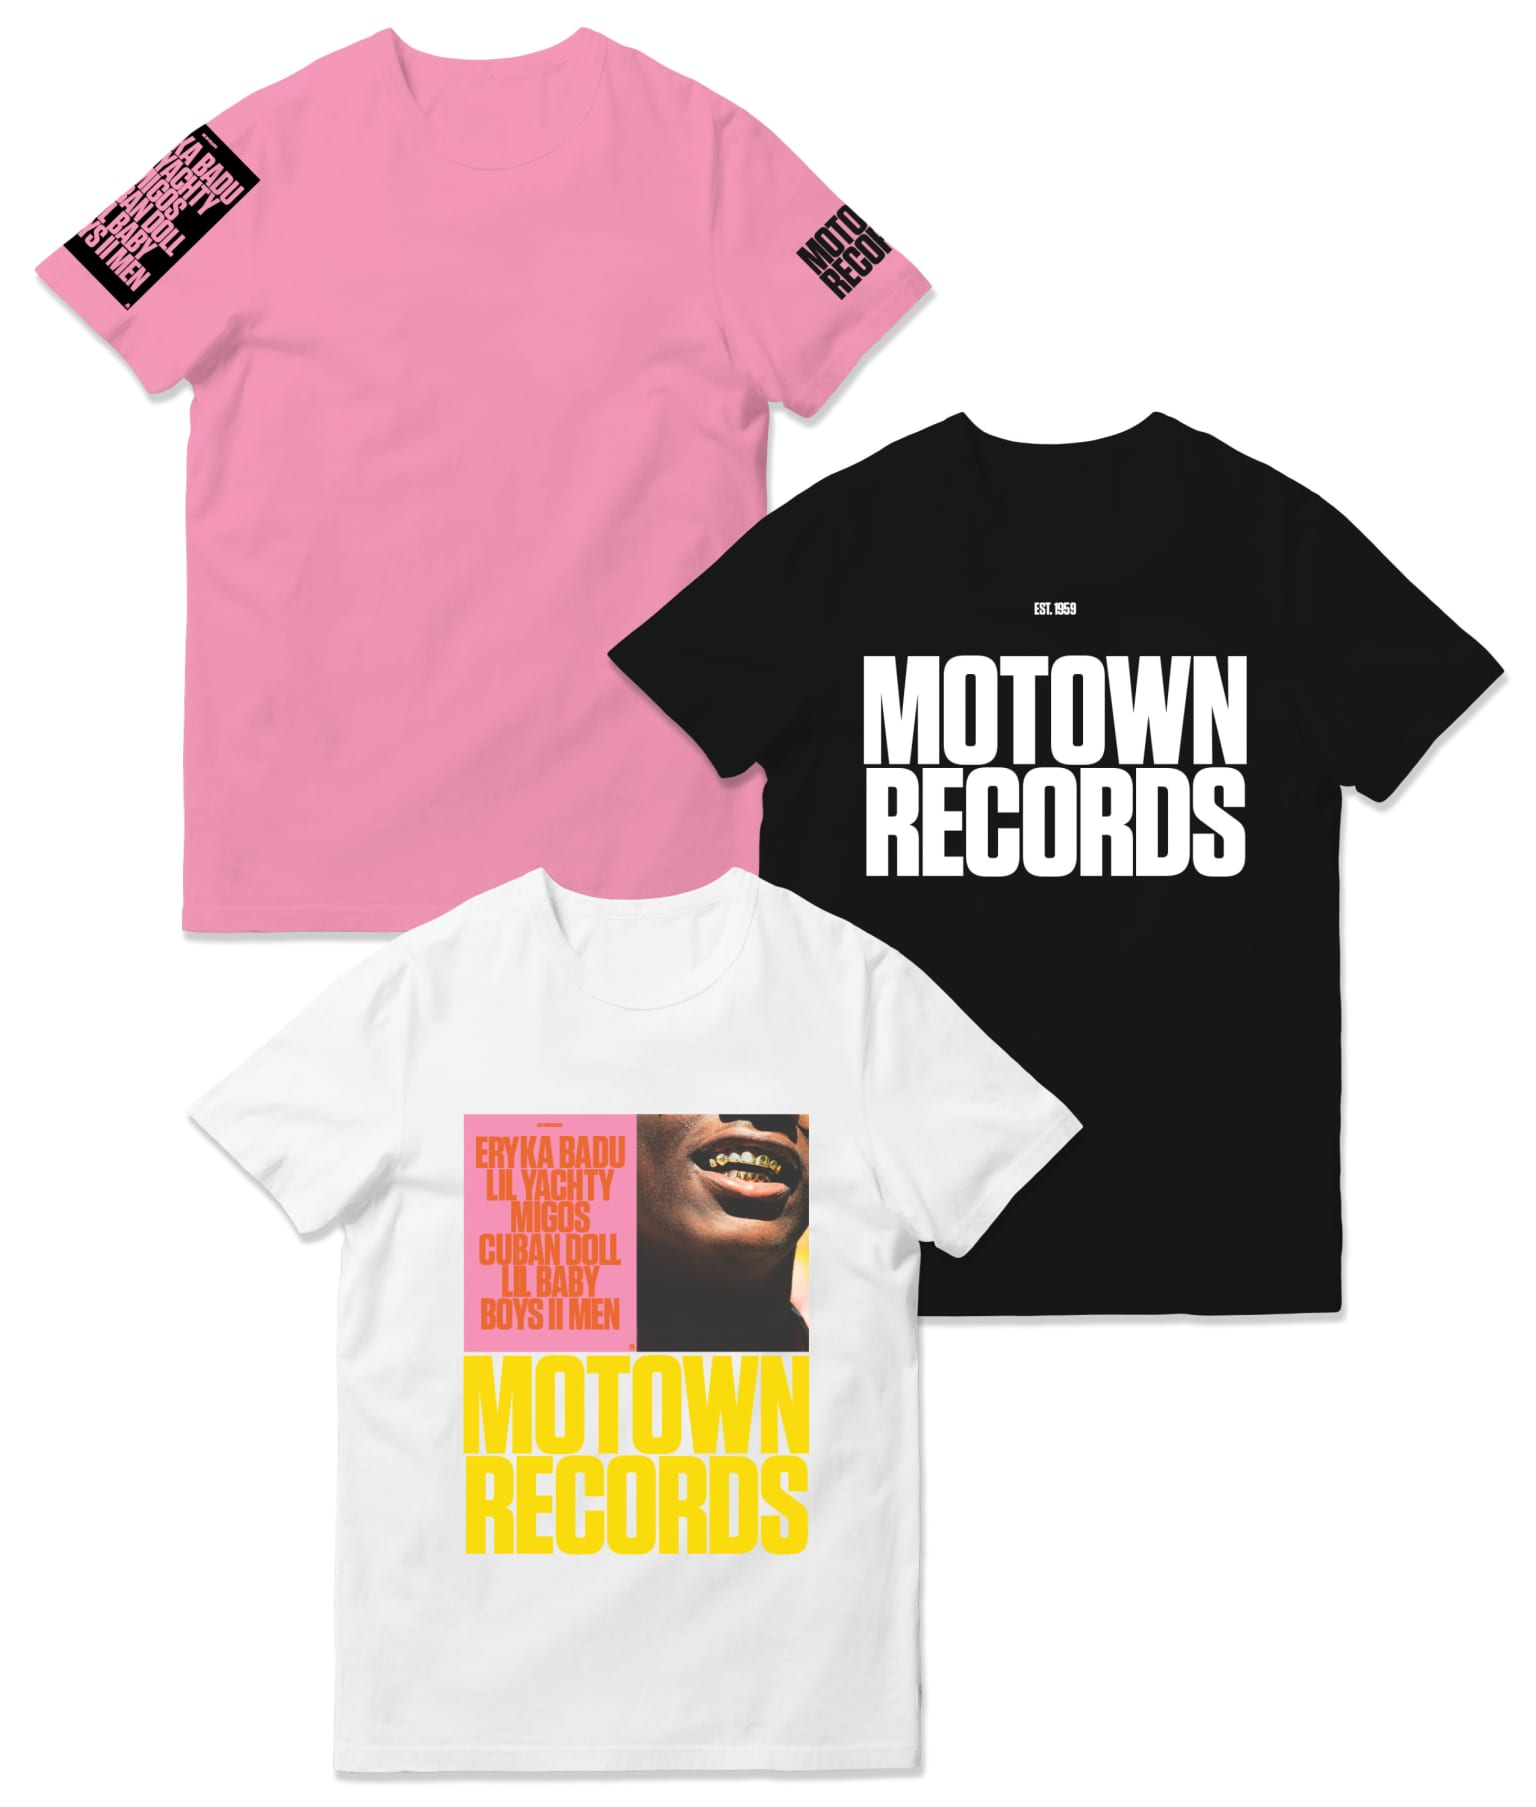 60 Years of Motown Records — 002